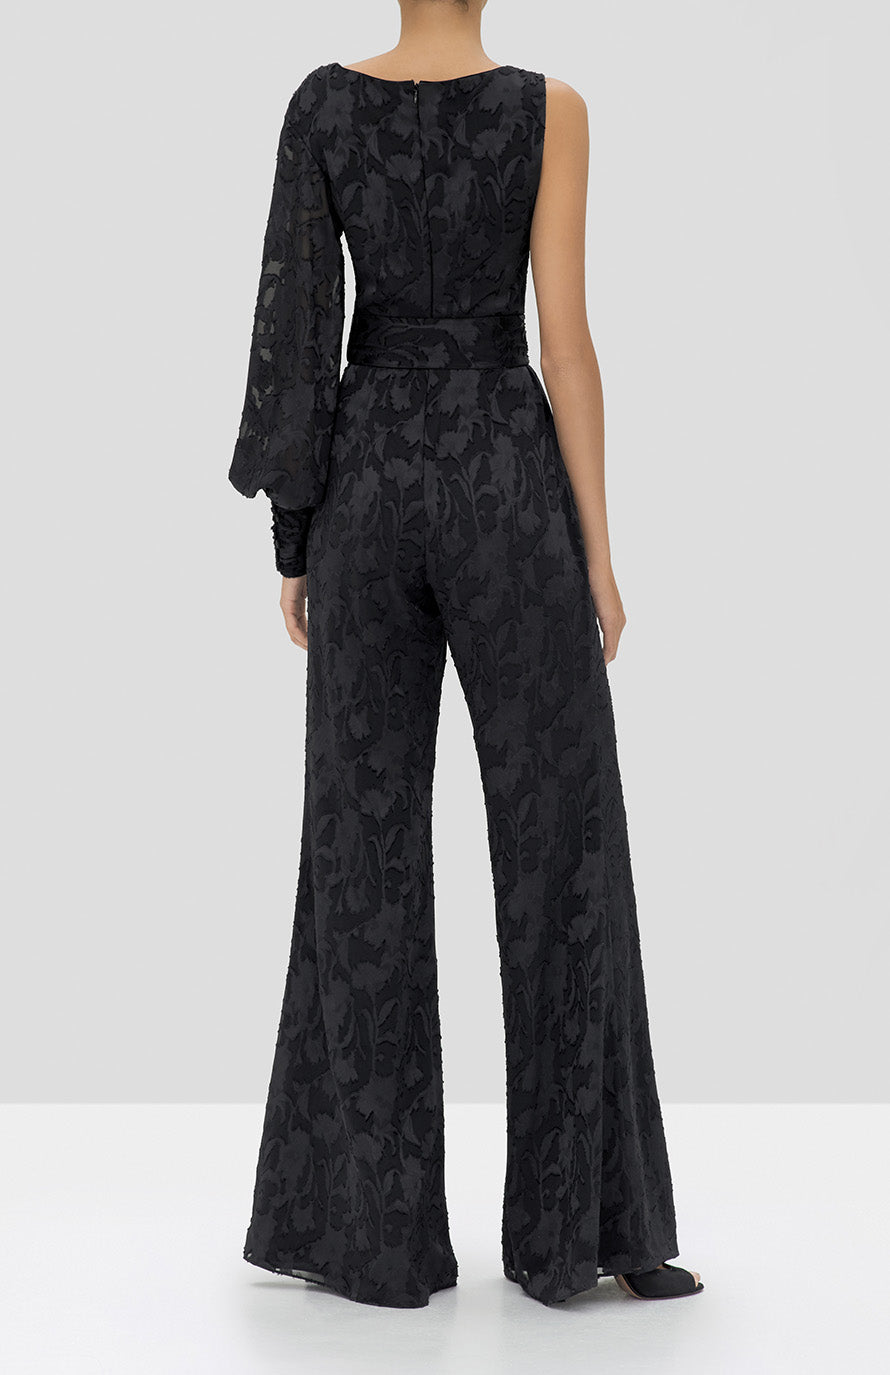 Alexis Berezzi Jumpsuit in Black Floral from the Holiday 2019 Ready To Wear Collection - Rear View